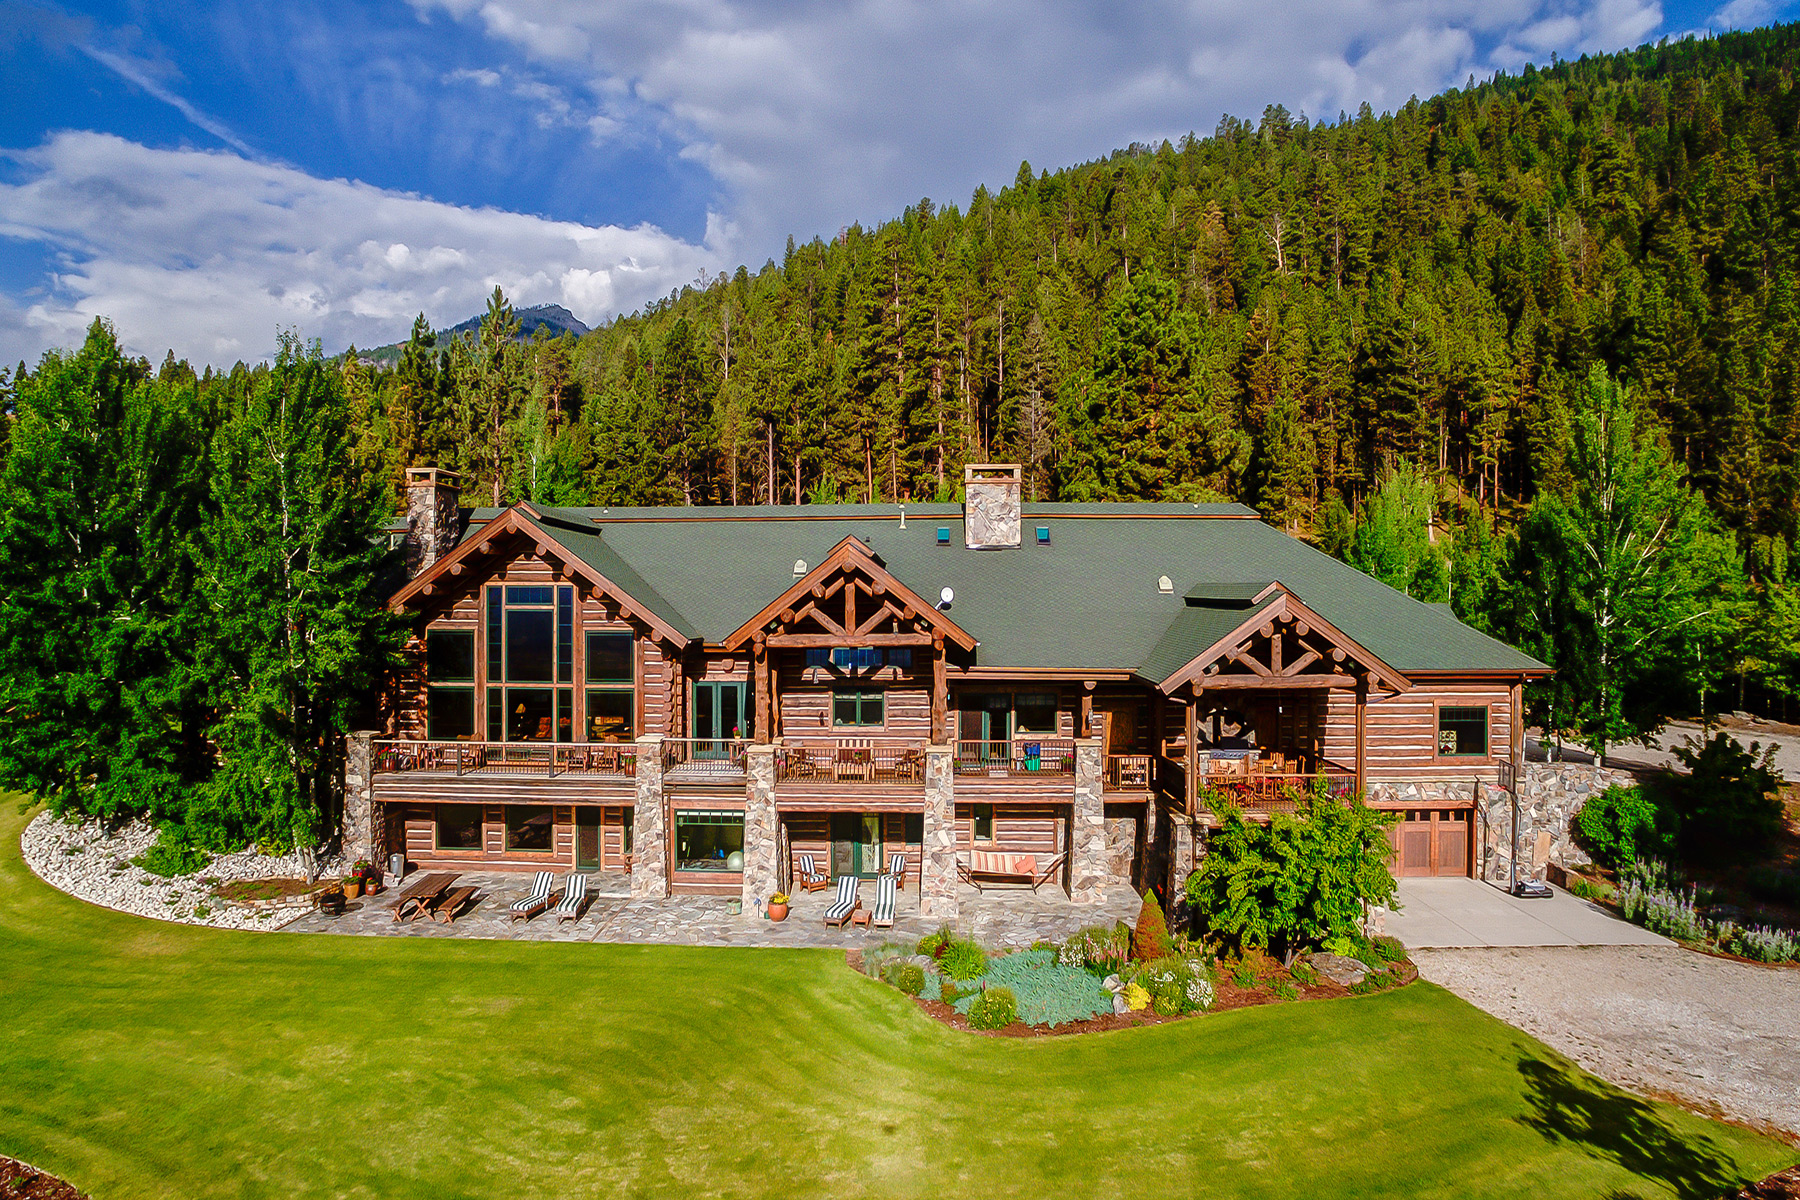 Single Family Home for Sale at Exquisite Log Home Non Disclose Victor, Montana 59875 United States